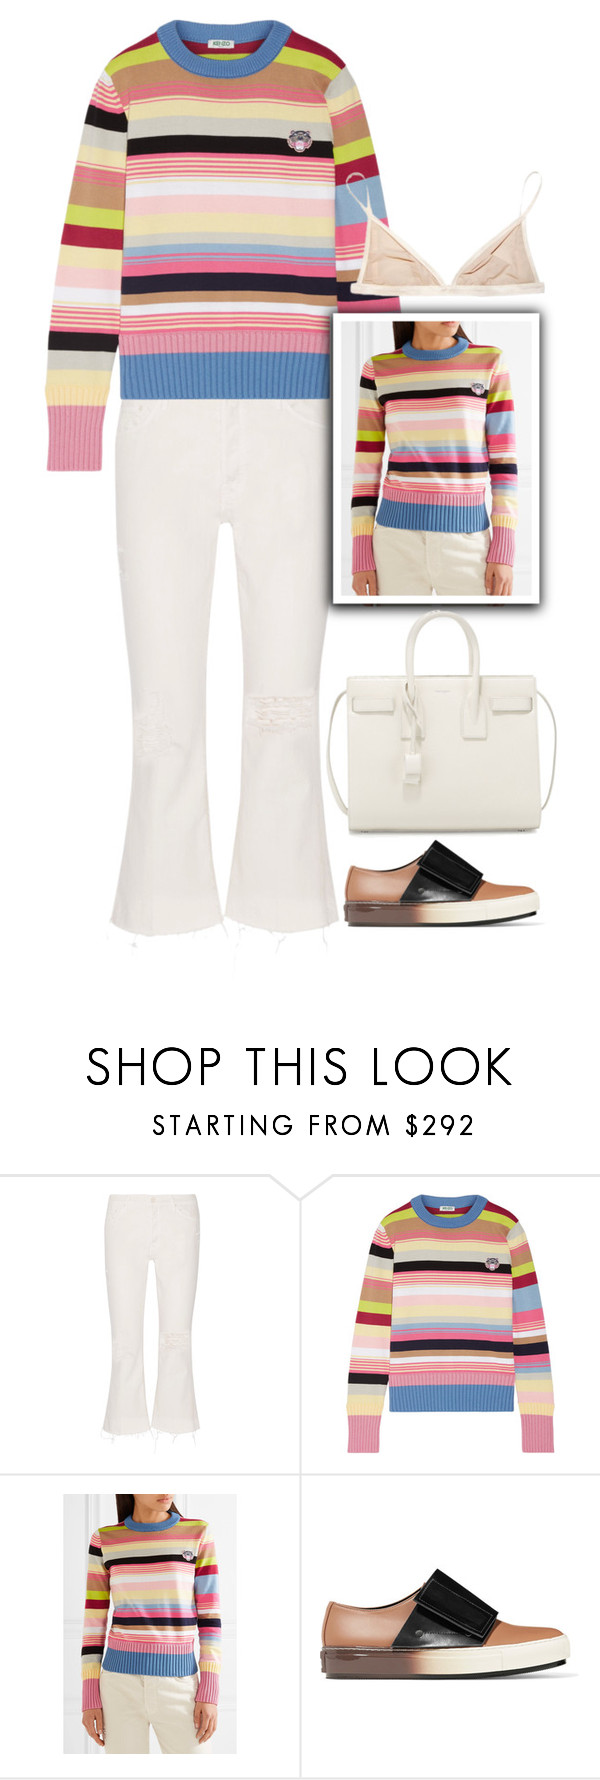 """""""1252"""" by melanie-avni ❤ liked on Polyvore featuring Mother, Kenzo, Marni and Yves Saint Laurent"""